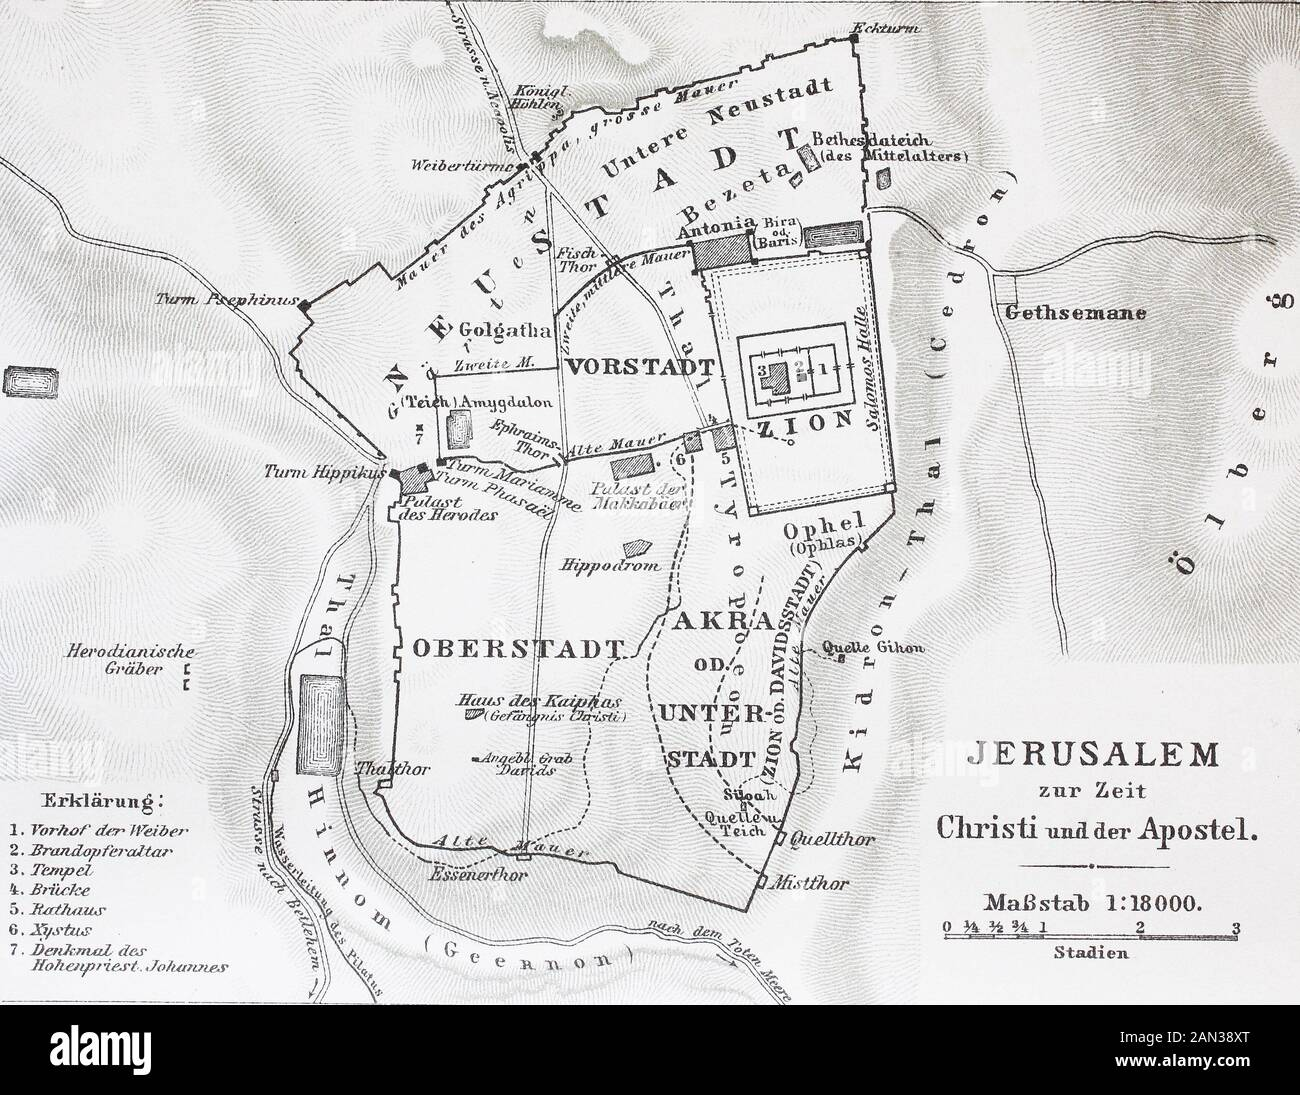 Map Of Jerusalem At The Time Of Jesus Christ Karte Von